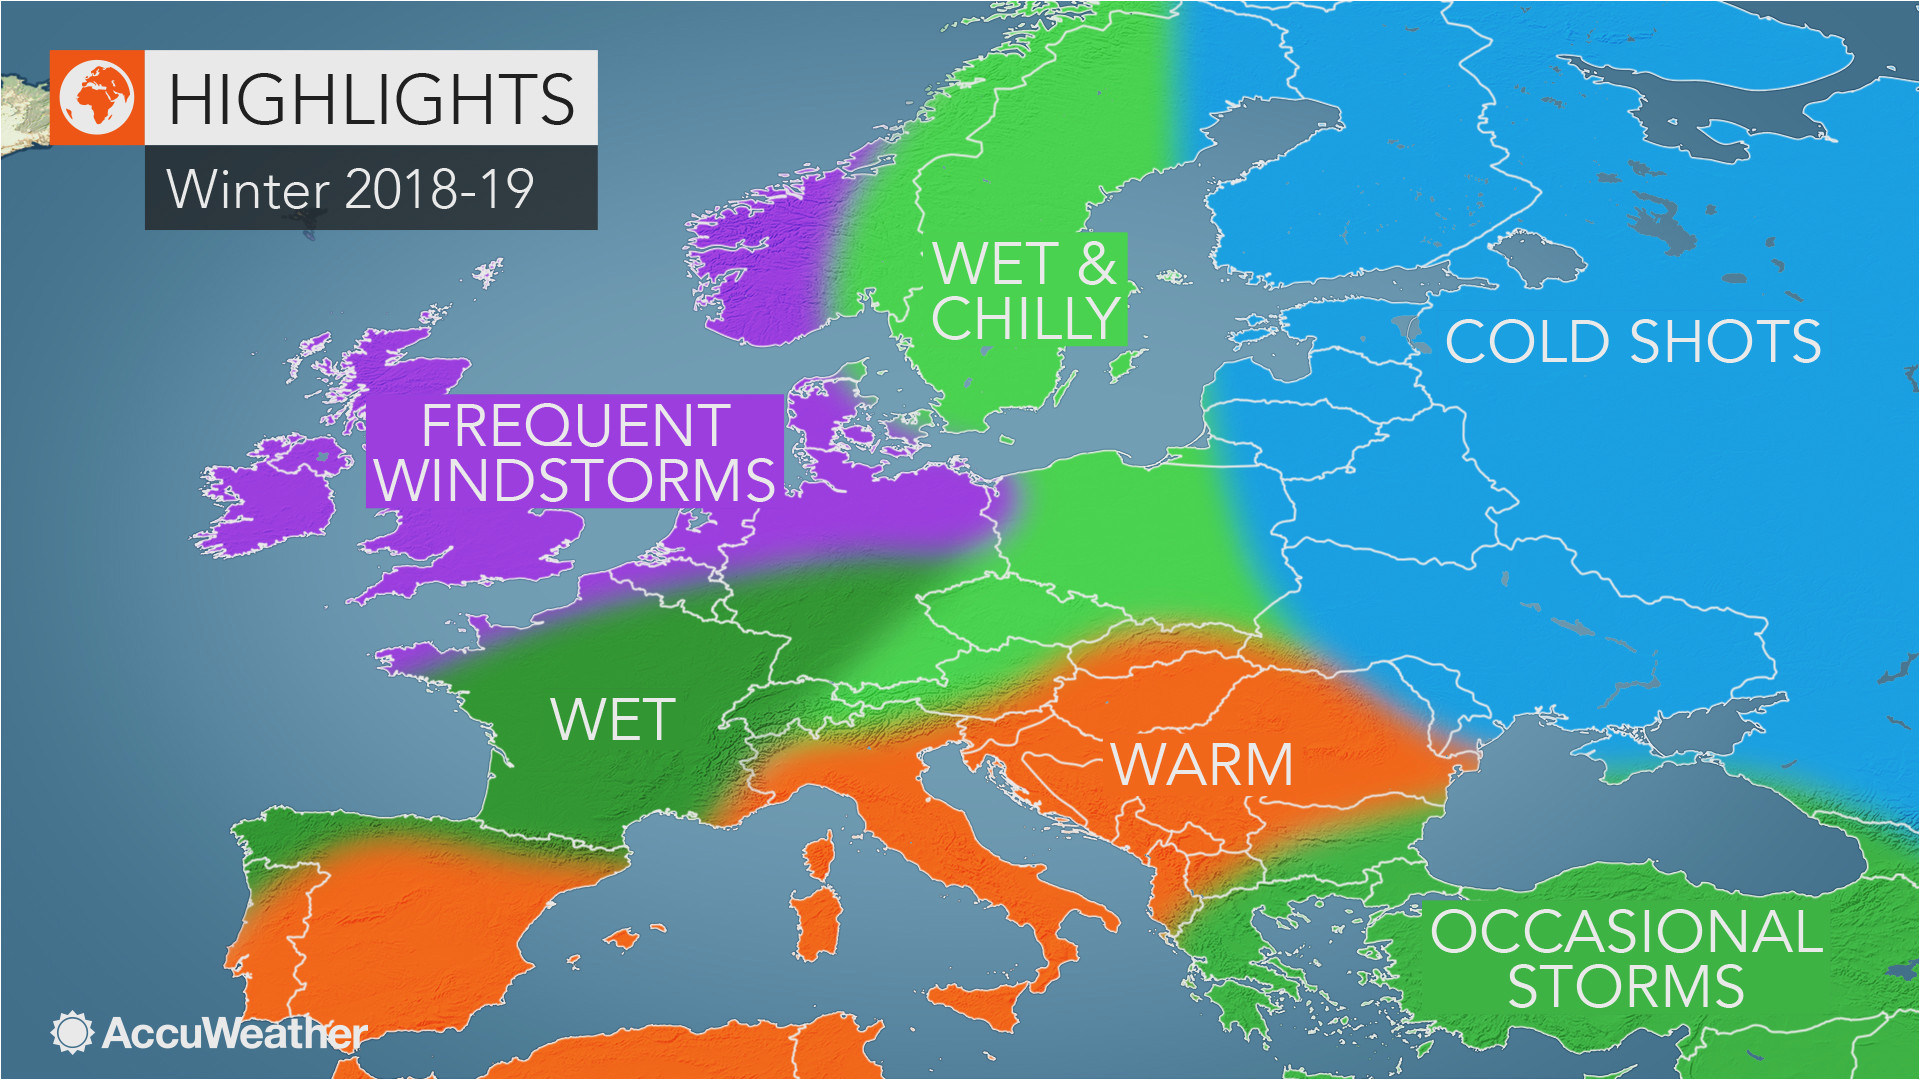 accuweather s europe winter forecast for the 2018 2019 season